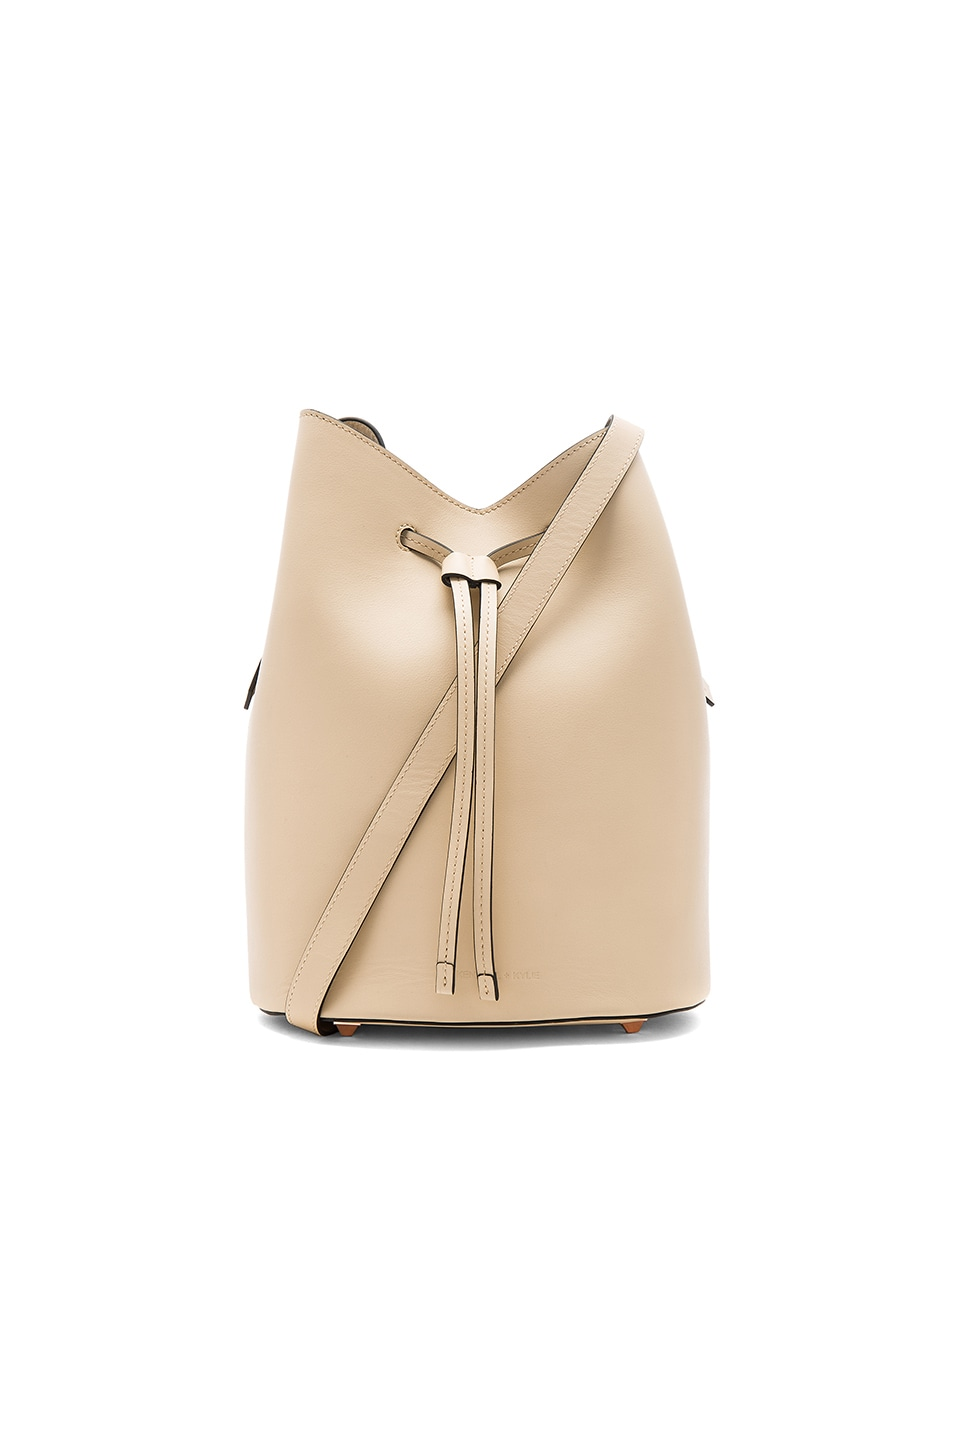 KENDALL + KYLIE Ladie Bucket Bag in Cream Tan